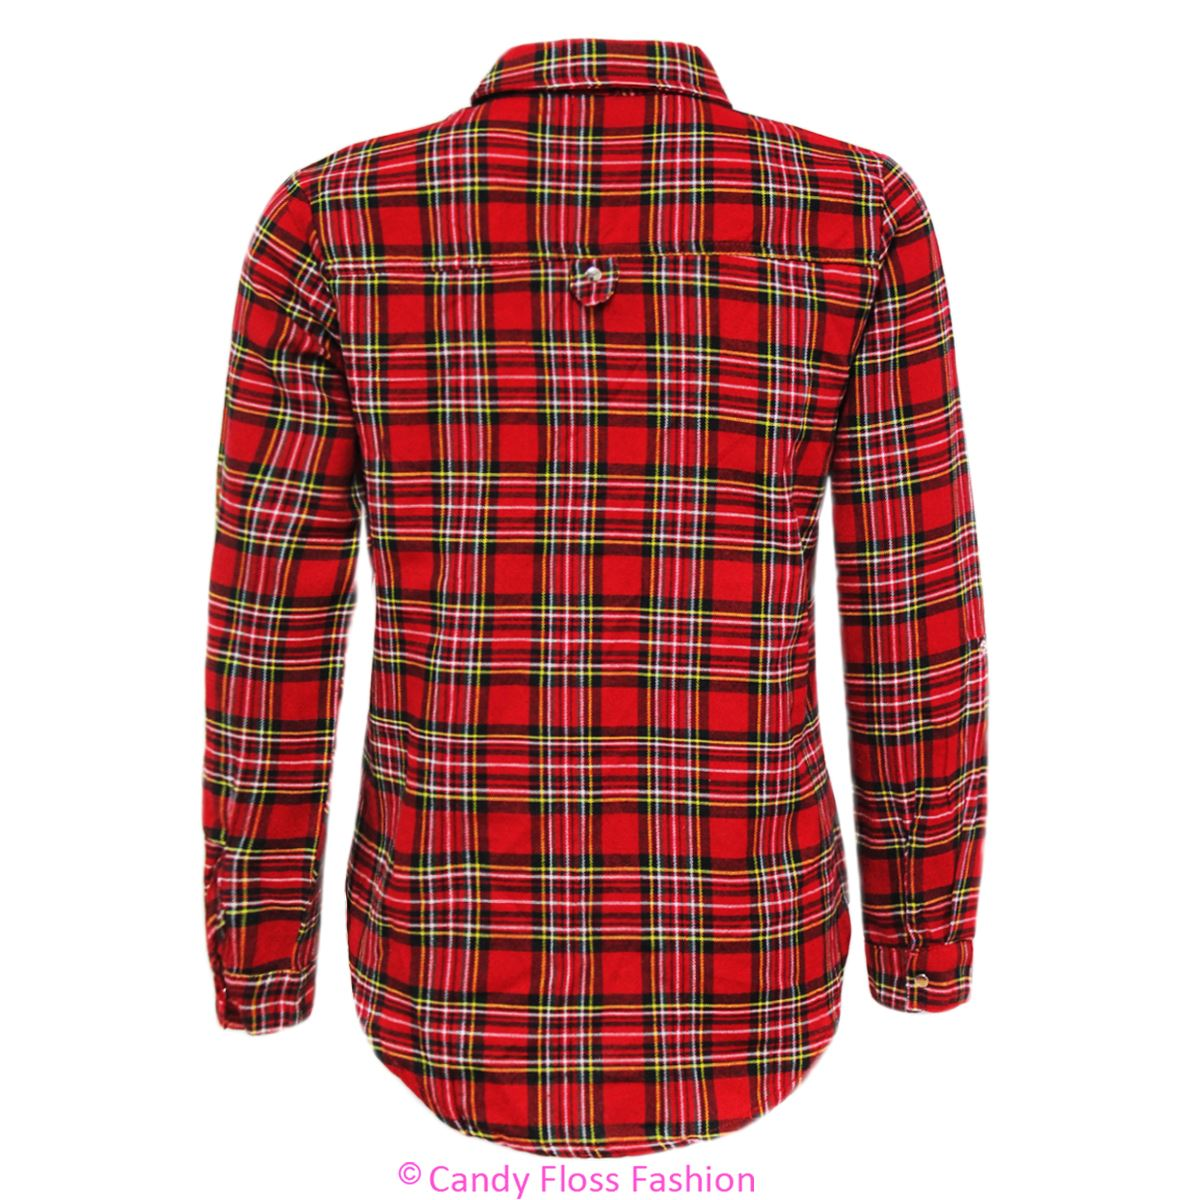 TOPINCN Women Long sleeve Plaid Shirt, Women Plaid Tee Shirt,Casual Style Women Tartan Shirt Turn-down Collar Long Sleeve Baggy Blouse Tee Shirt. Average rating: 0 out of 5 stars, based on 0 reviews Write a review. TOPINCN. This button opens a dialog that displays additional images for this product with the option to zoom in or out.